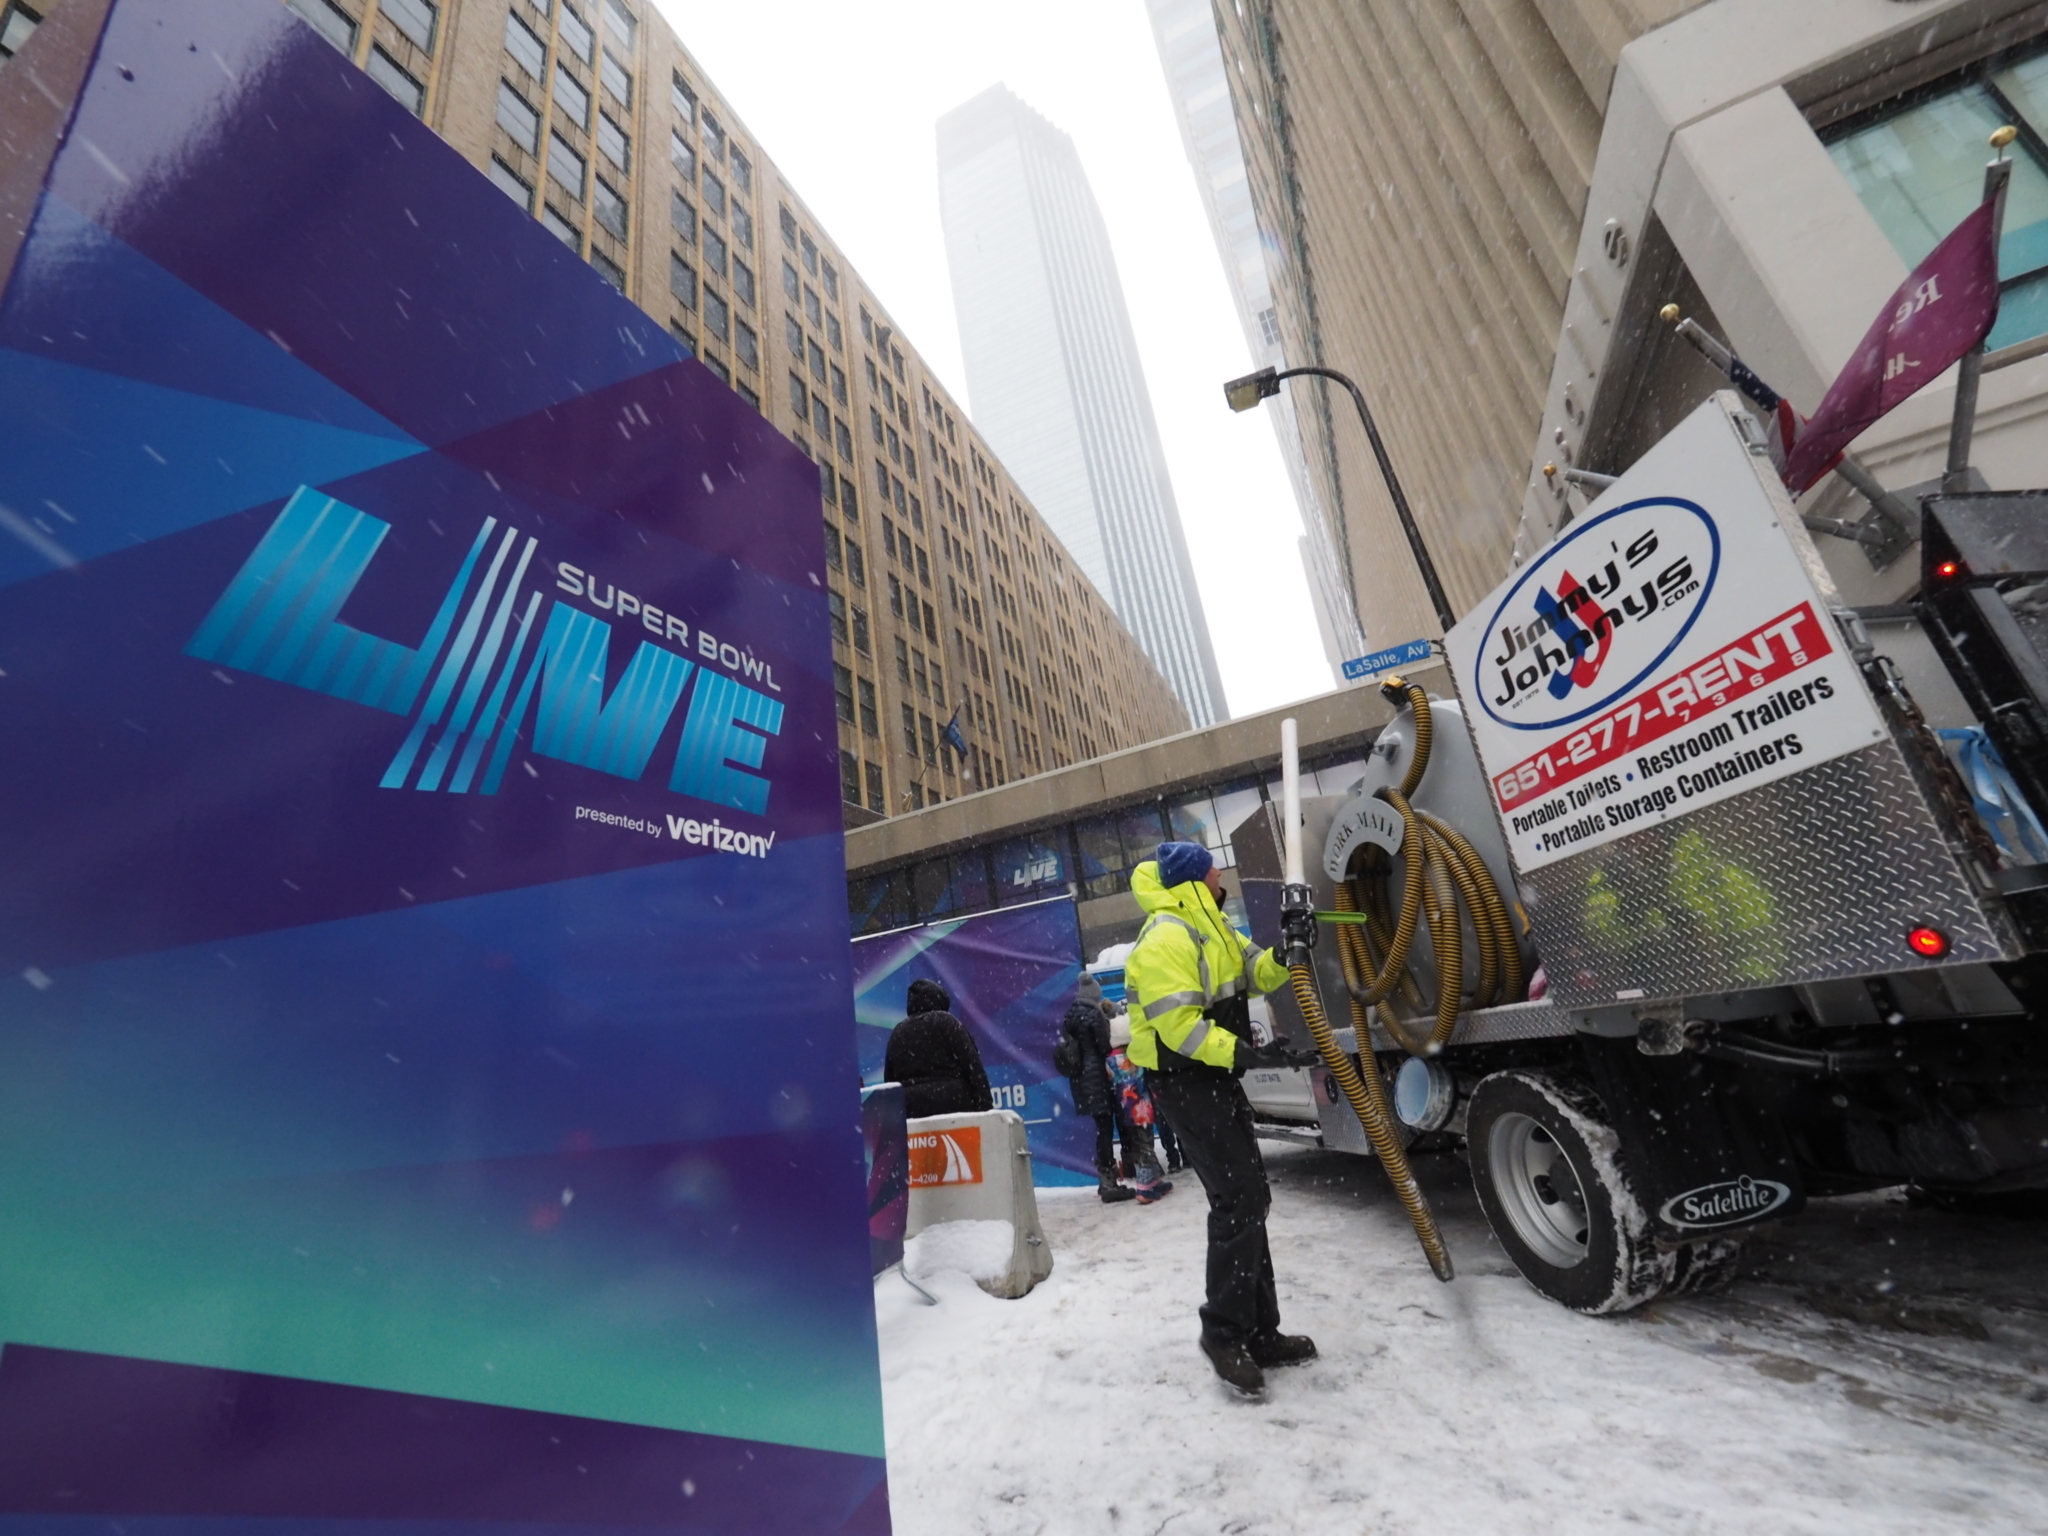 Jimmy's Johnnys provided some 300 portable restrooms to Super Bowl LIVE attendees for 10 days in Minneapolis. The company also tendered executive restroom trailers, attendants, water tanks and other equipment. –Photos by Brad Stauffer